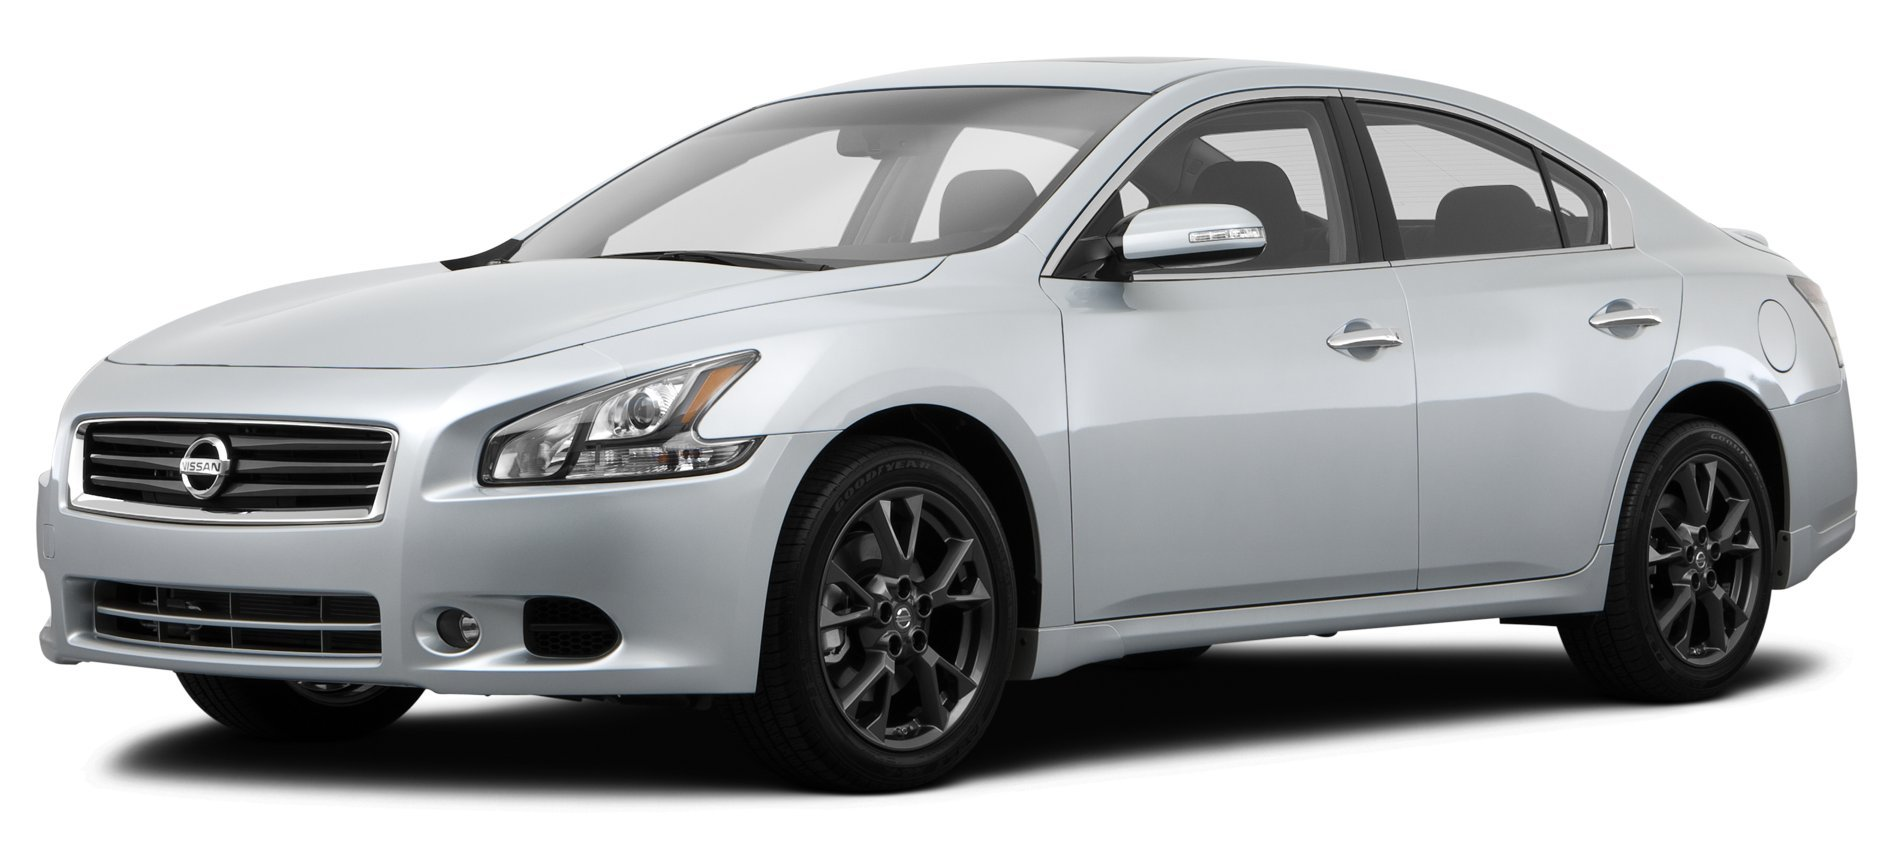 2014 nissan maxima reviews images and specs. Black Bedroom Furniture Sets. Home Design Ideas